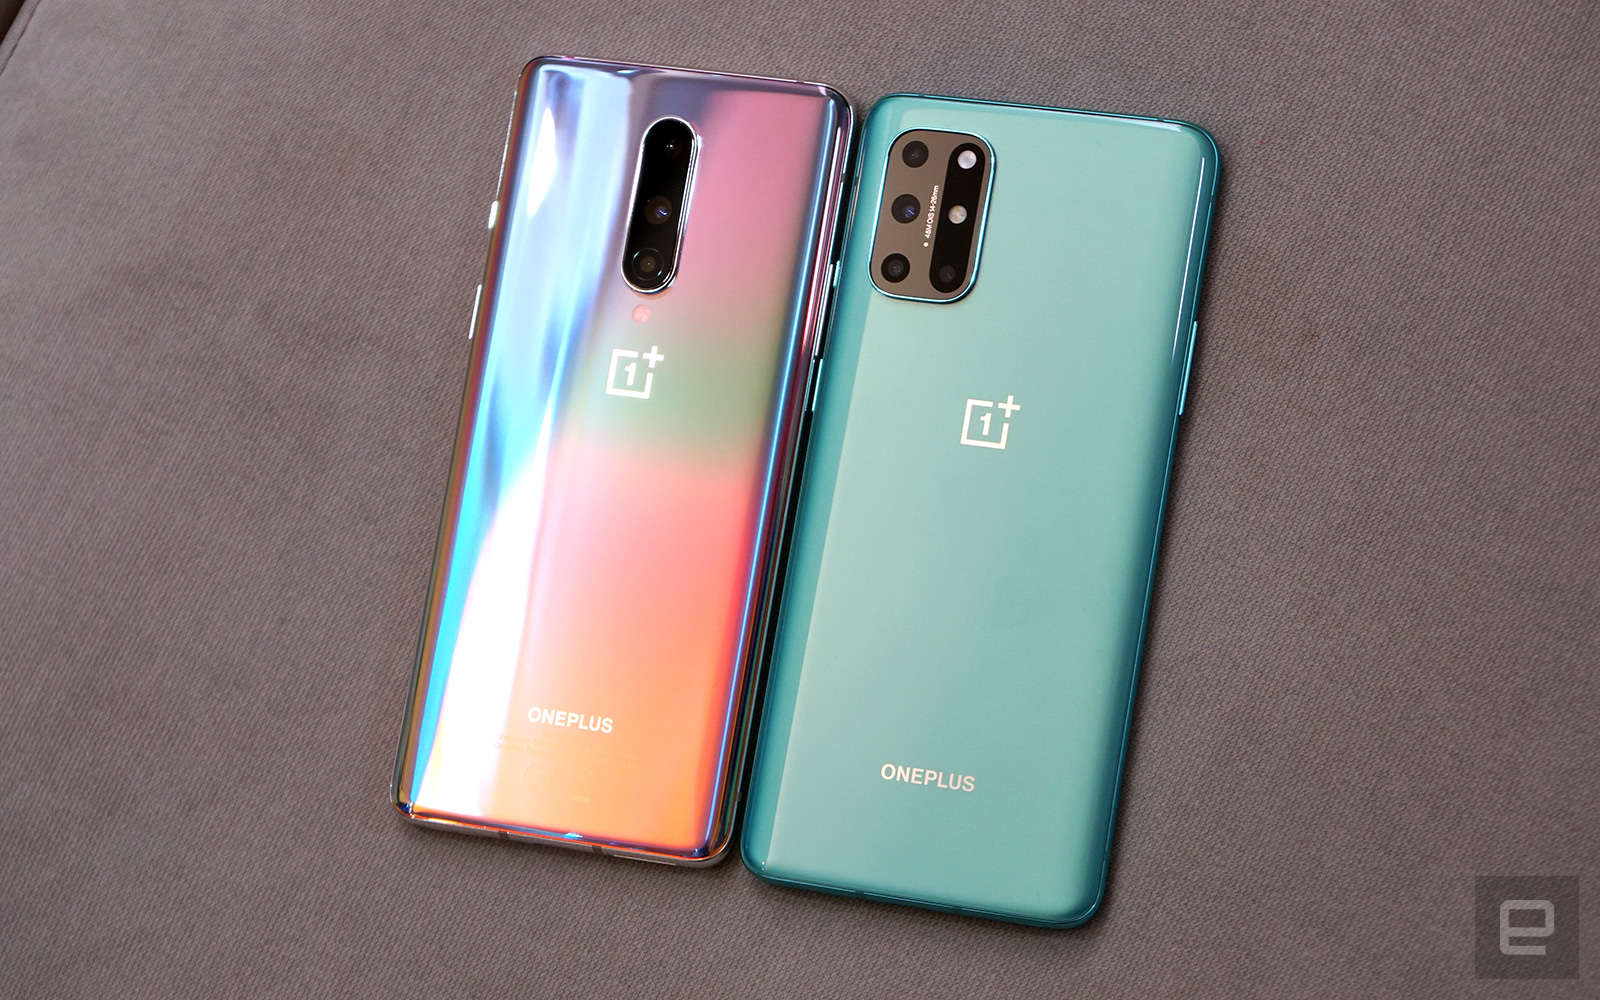 OnePlus' 8T and 8 Pro smartphones hit record lows ahead of Series 9 launch